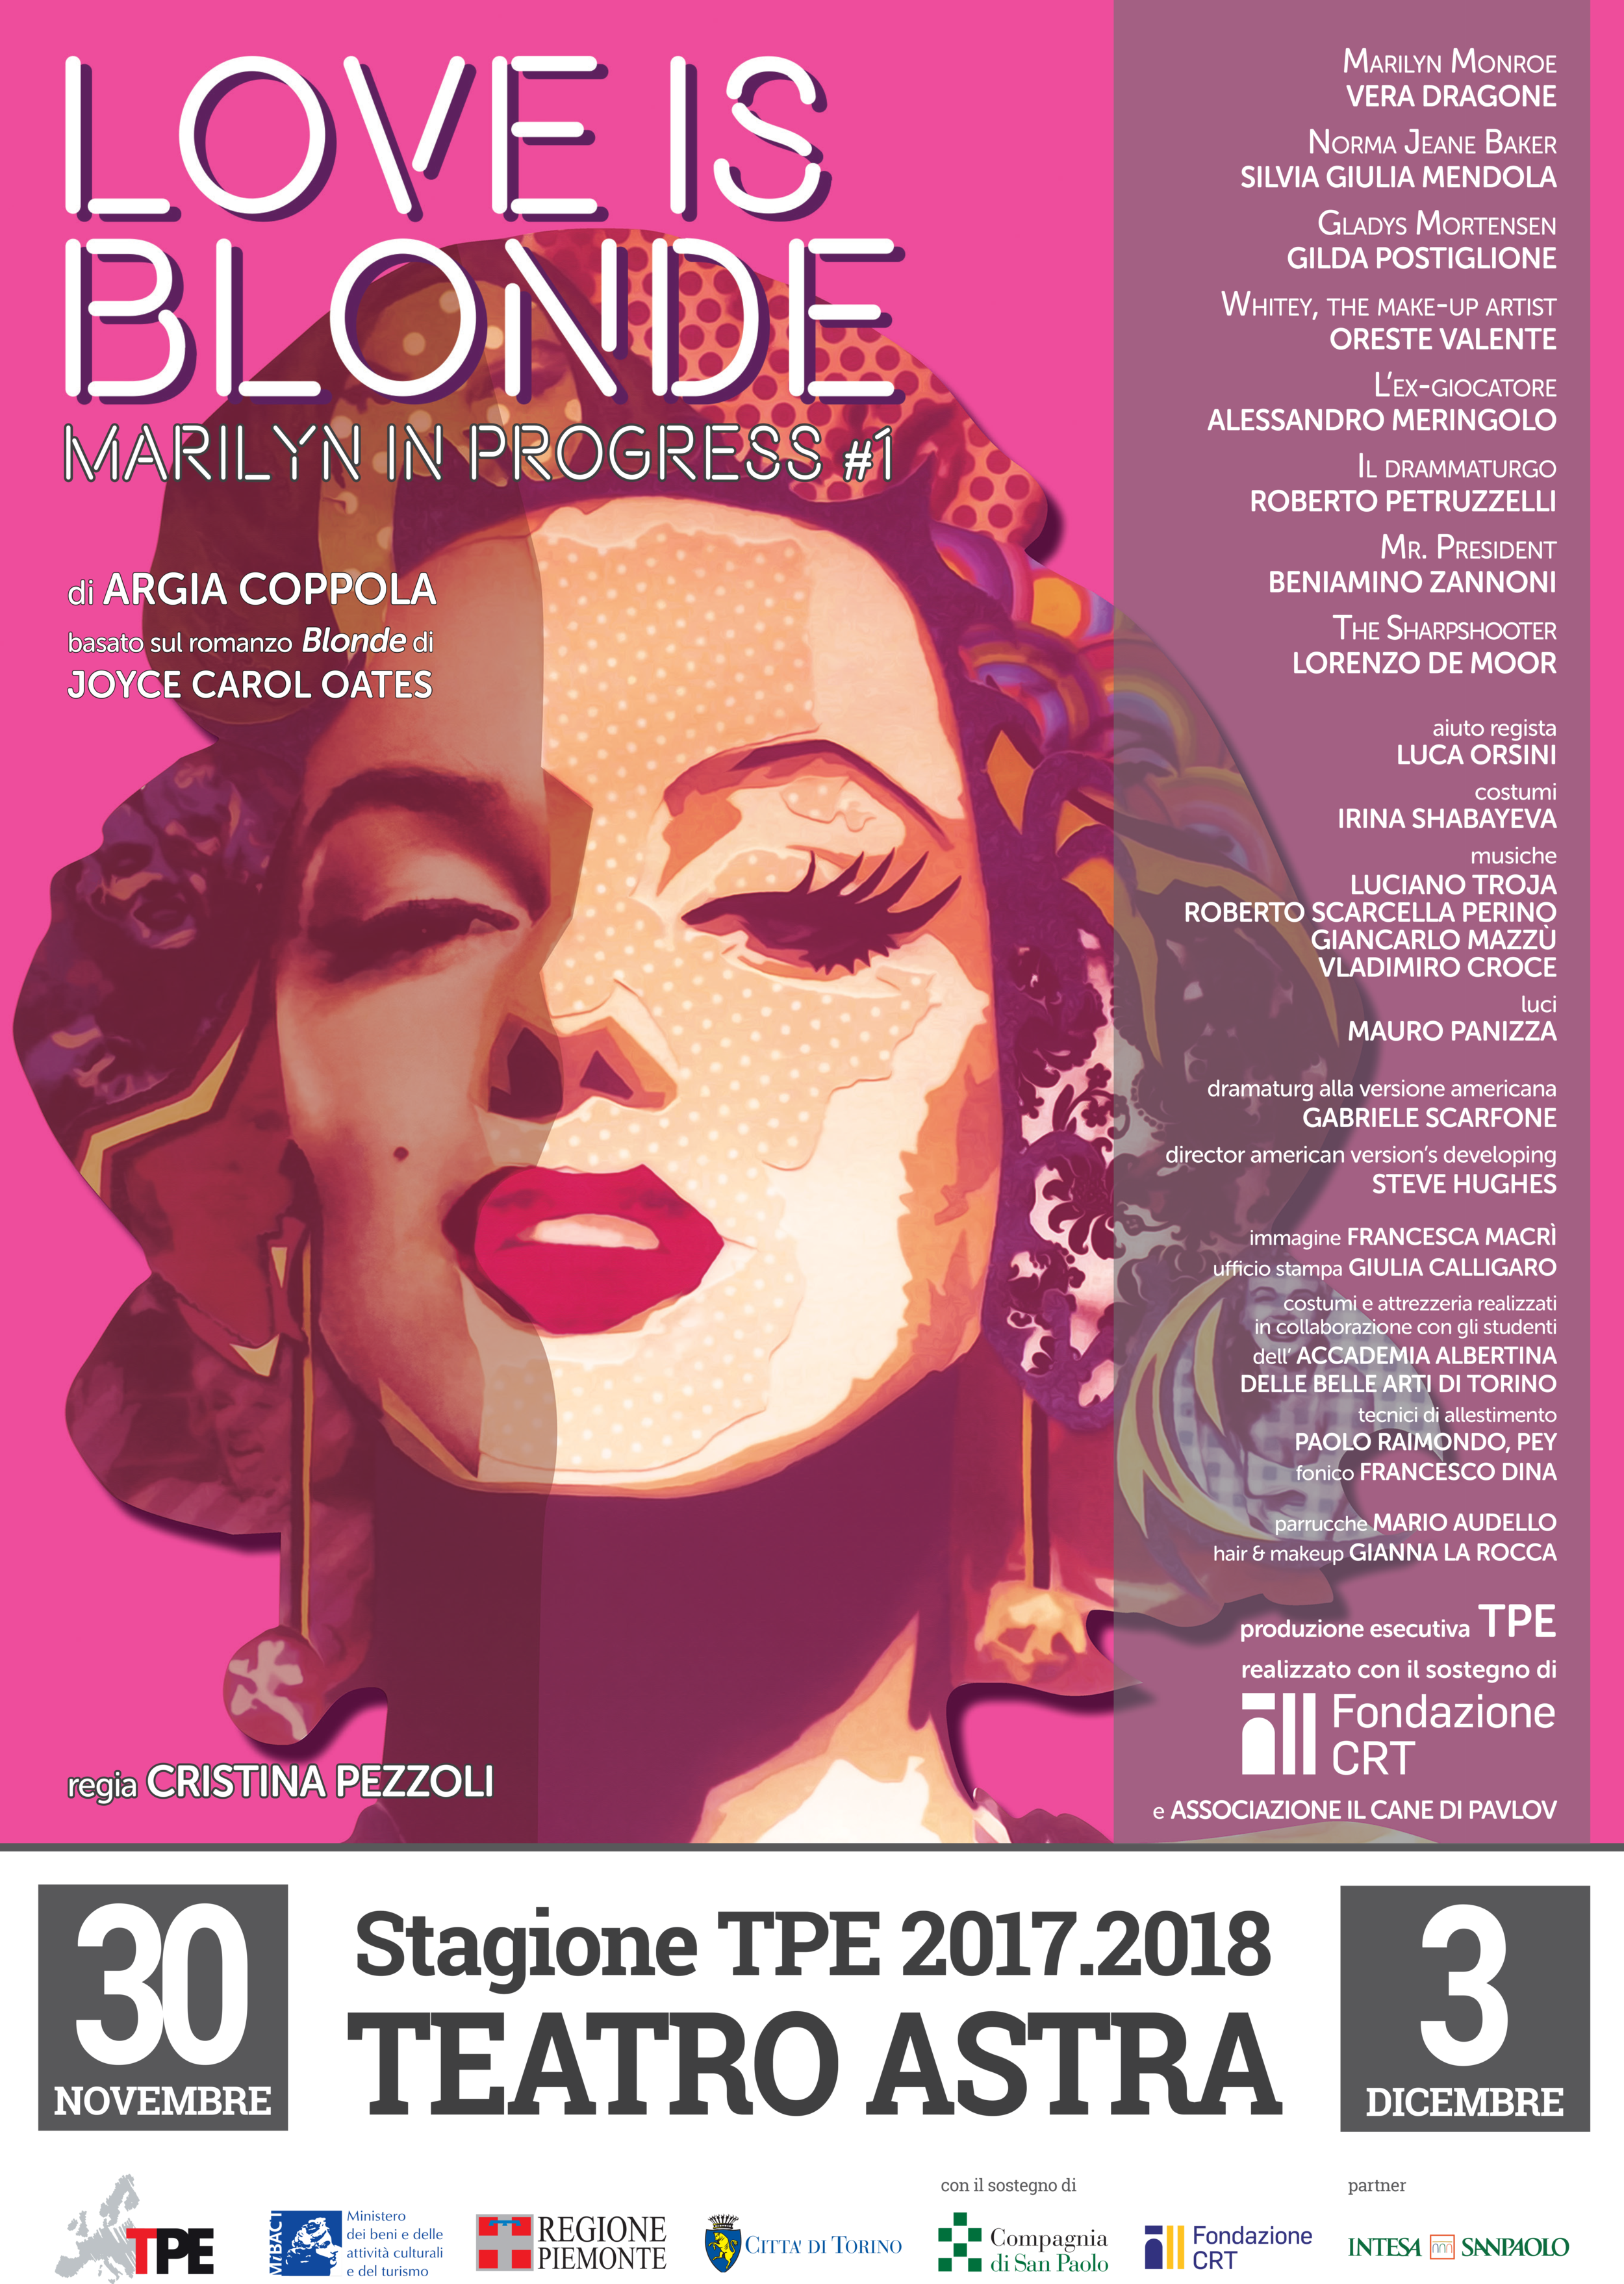 The official Italian playbill